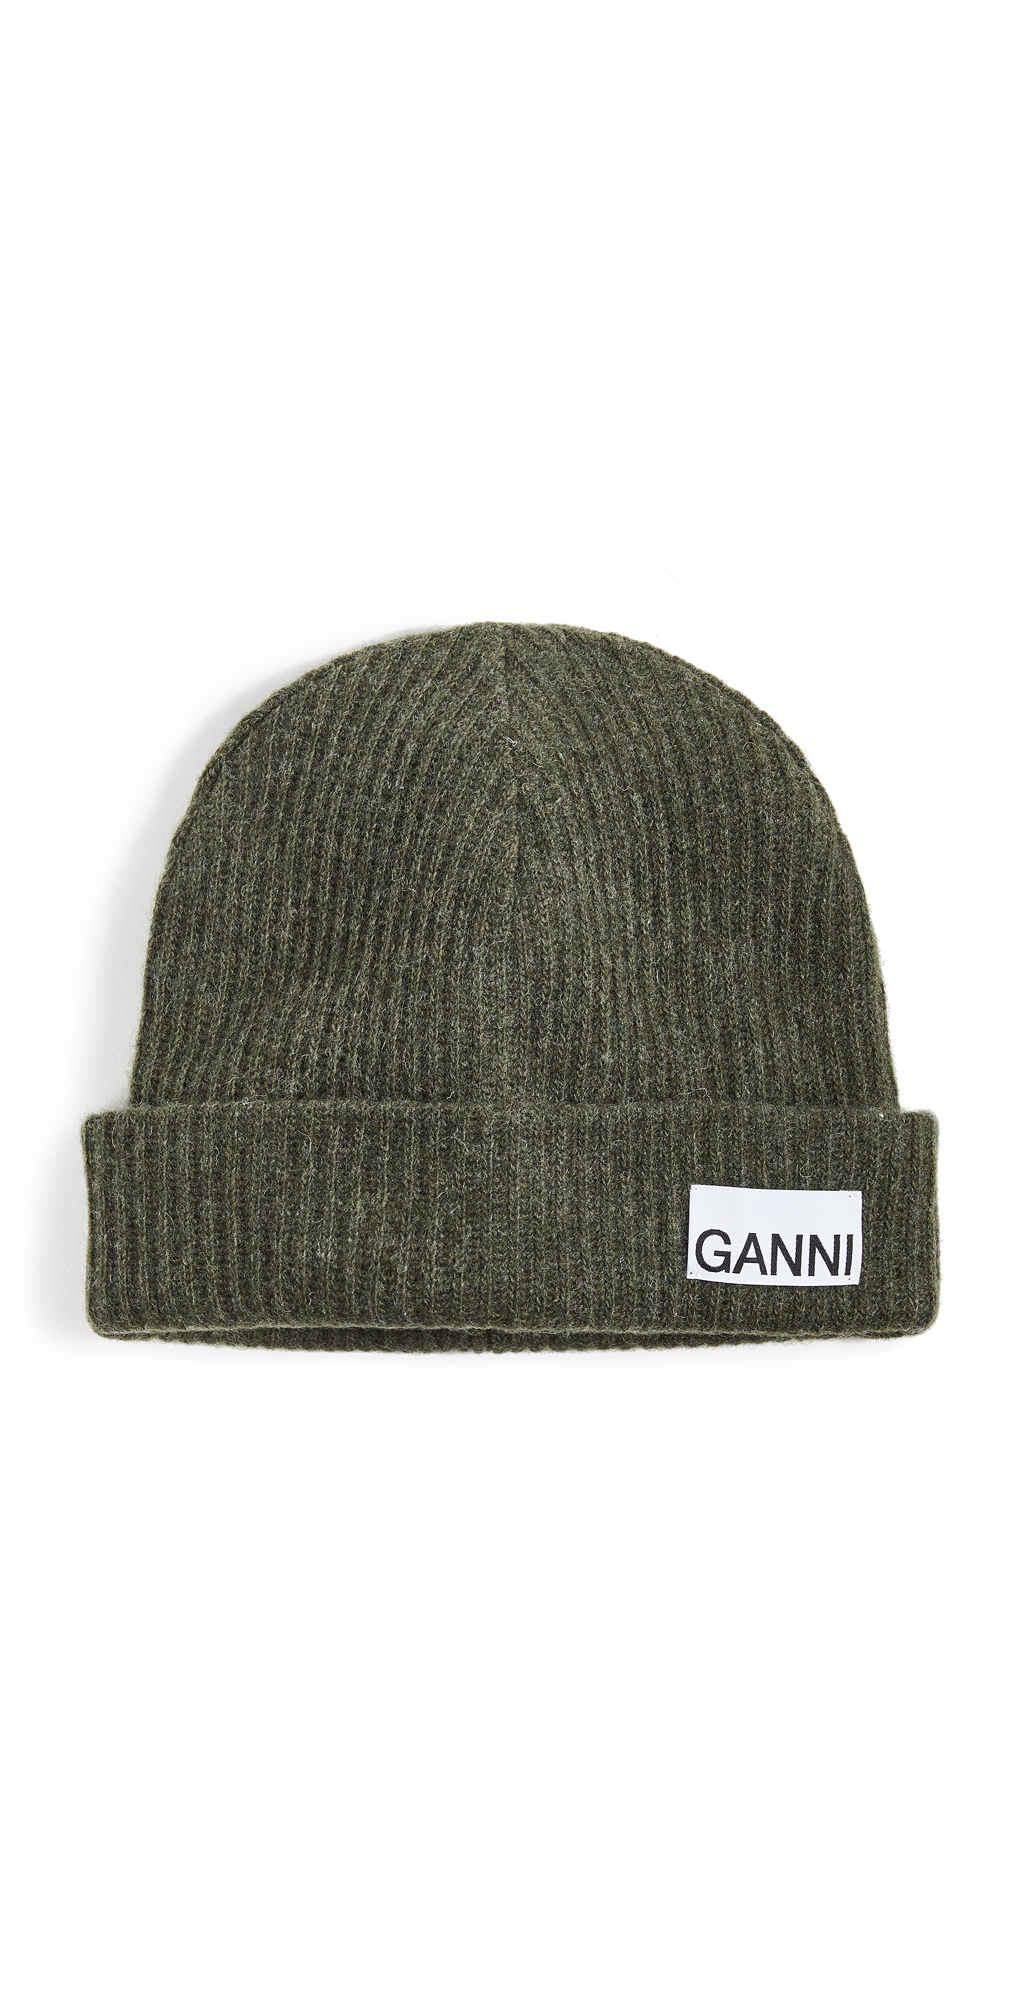 GANNI Recycled Wool Knit Beanie